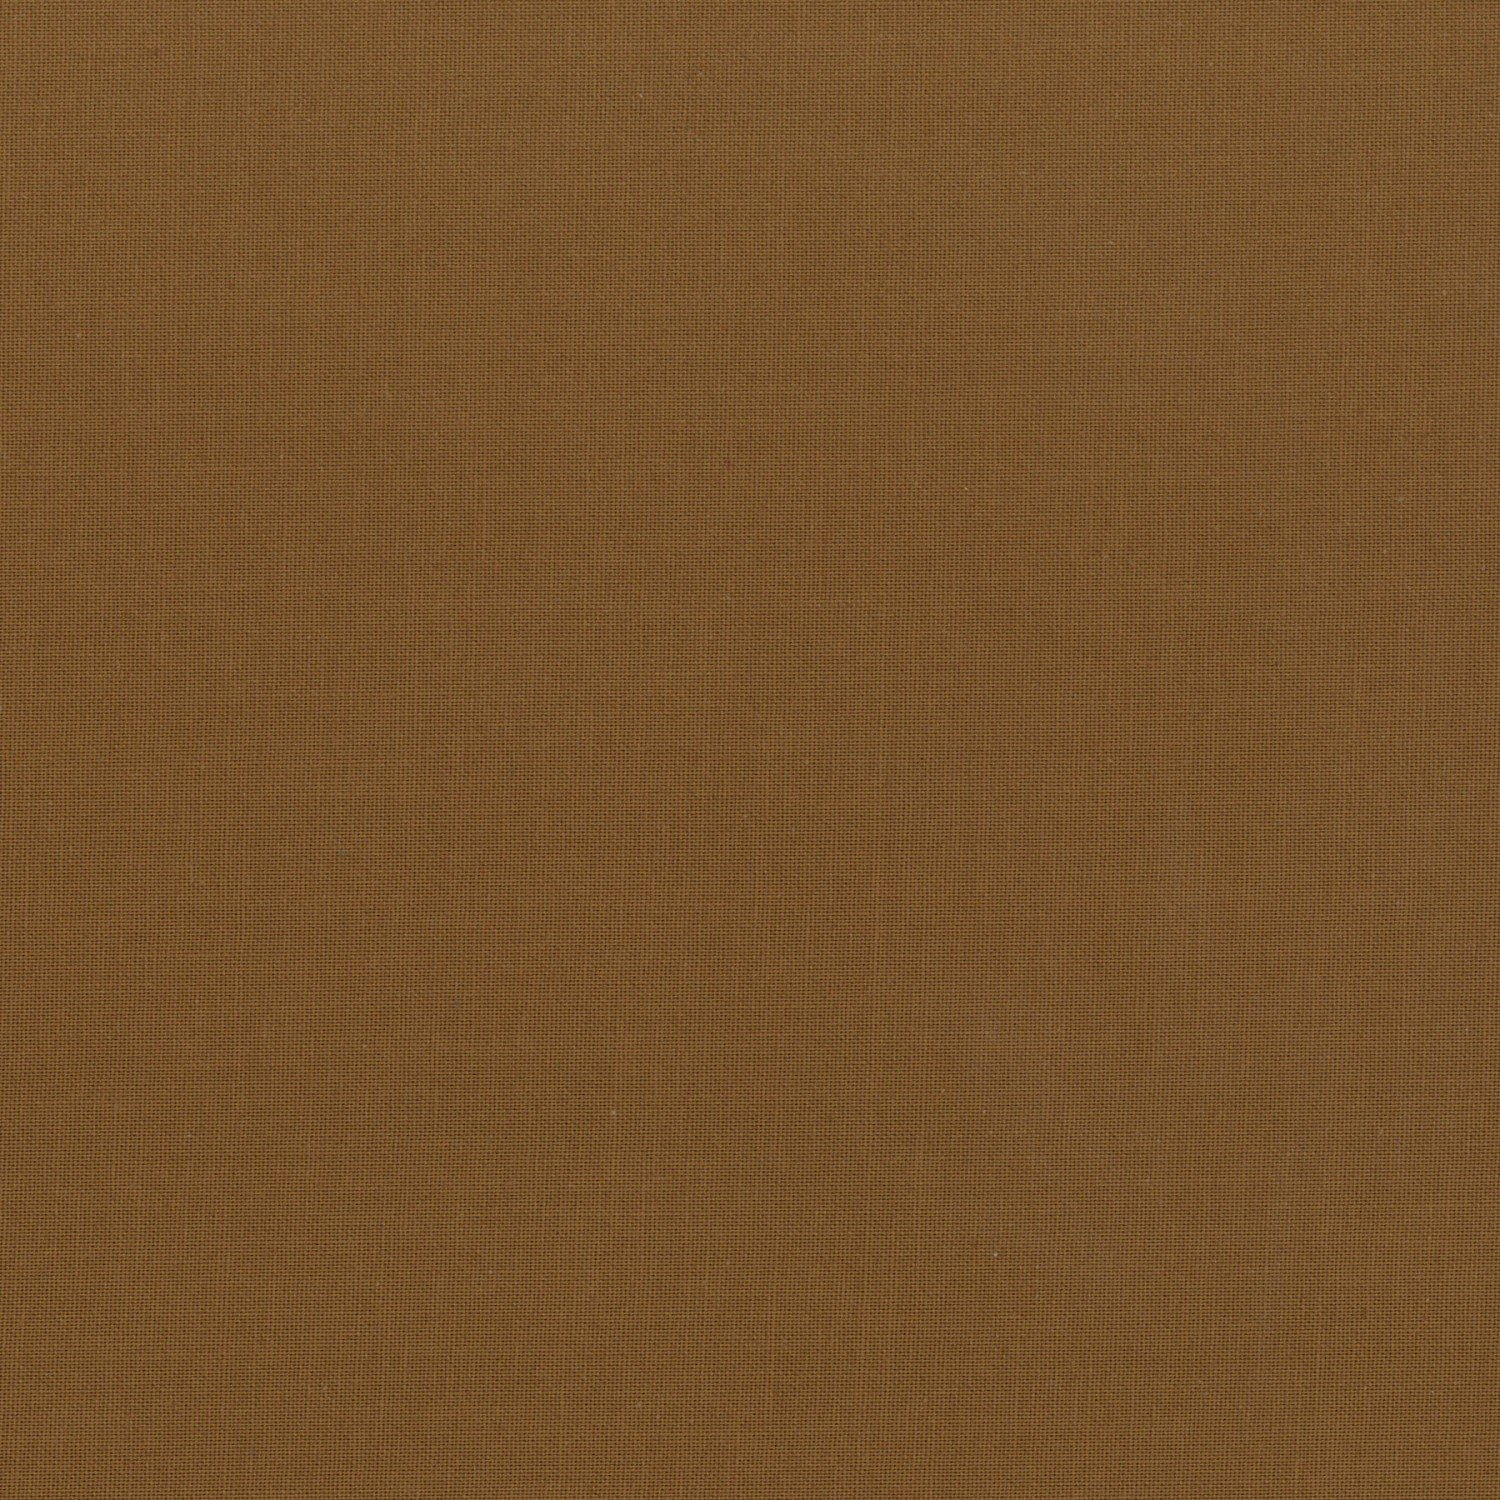 Solid Golden Brown Fabric Painter\'s Palette Collection by ...